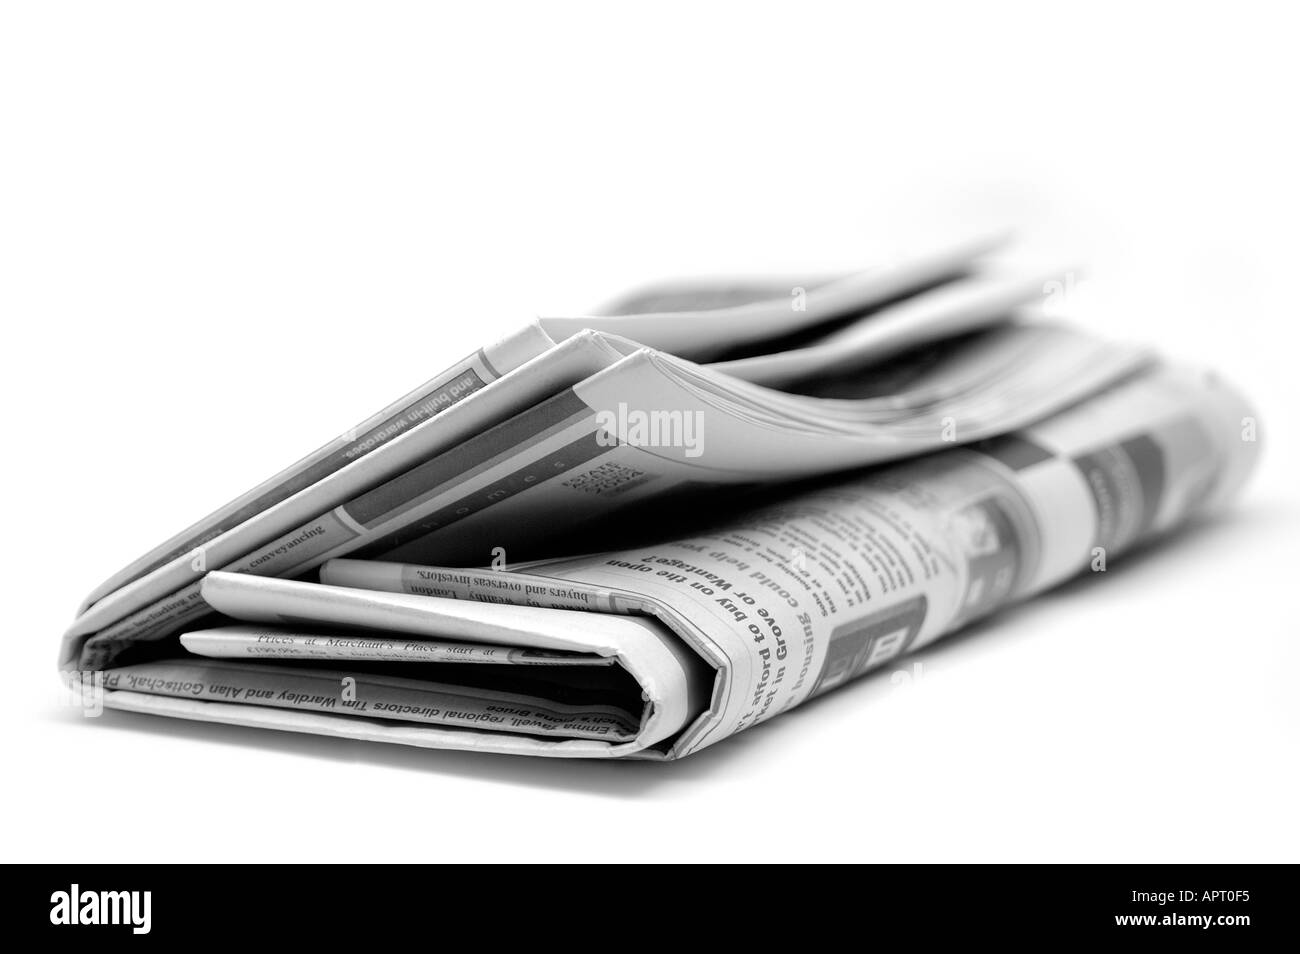 Newspaper on white background - Stock Image